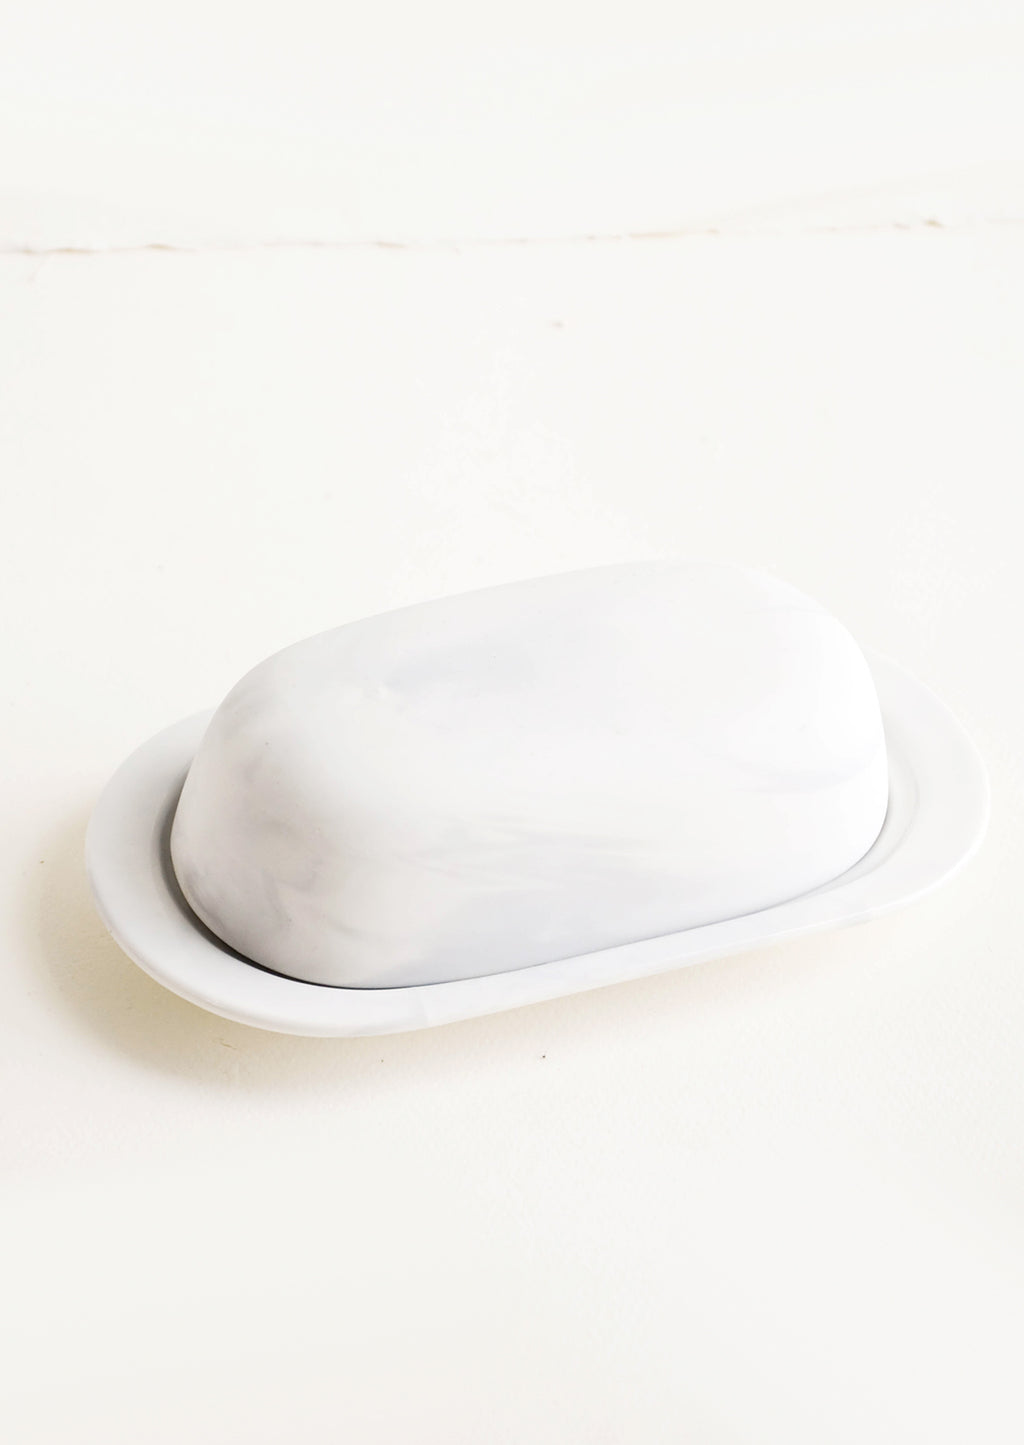 1: Oval shaped butter dish with curved dome lid, matte white ceramic with pale grey marbleized effect